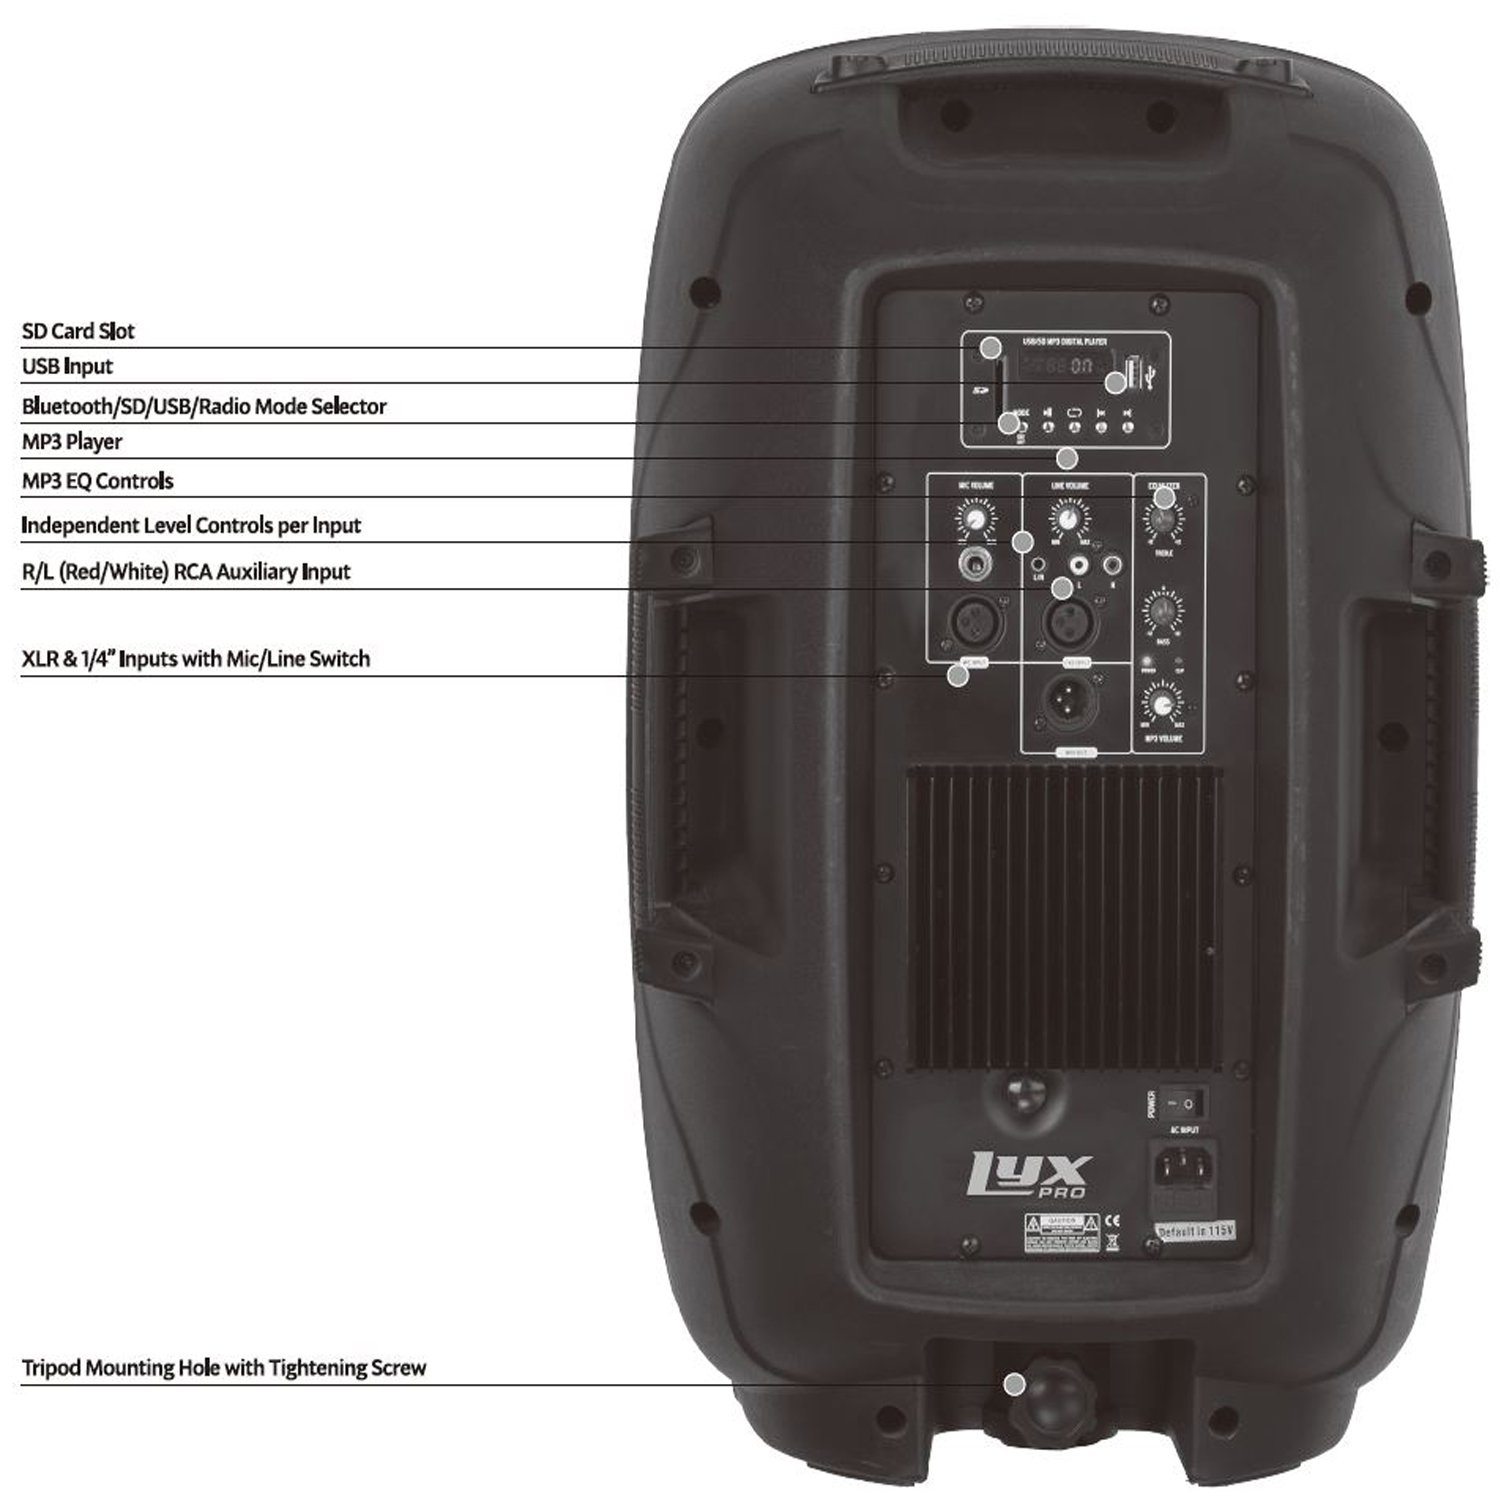 LyxPro SPA-12 - 12'' Compact Portable PA System 130-Watt RMS Power Active Speaker with Equalizer, Bluetooth, SD Slot, USB, MP3, XLR, 1/4'', 3.5mm Input by LyxPro (Image #3)